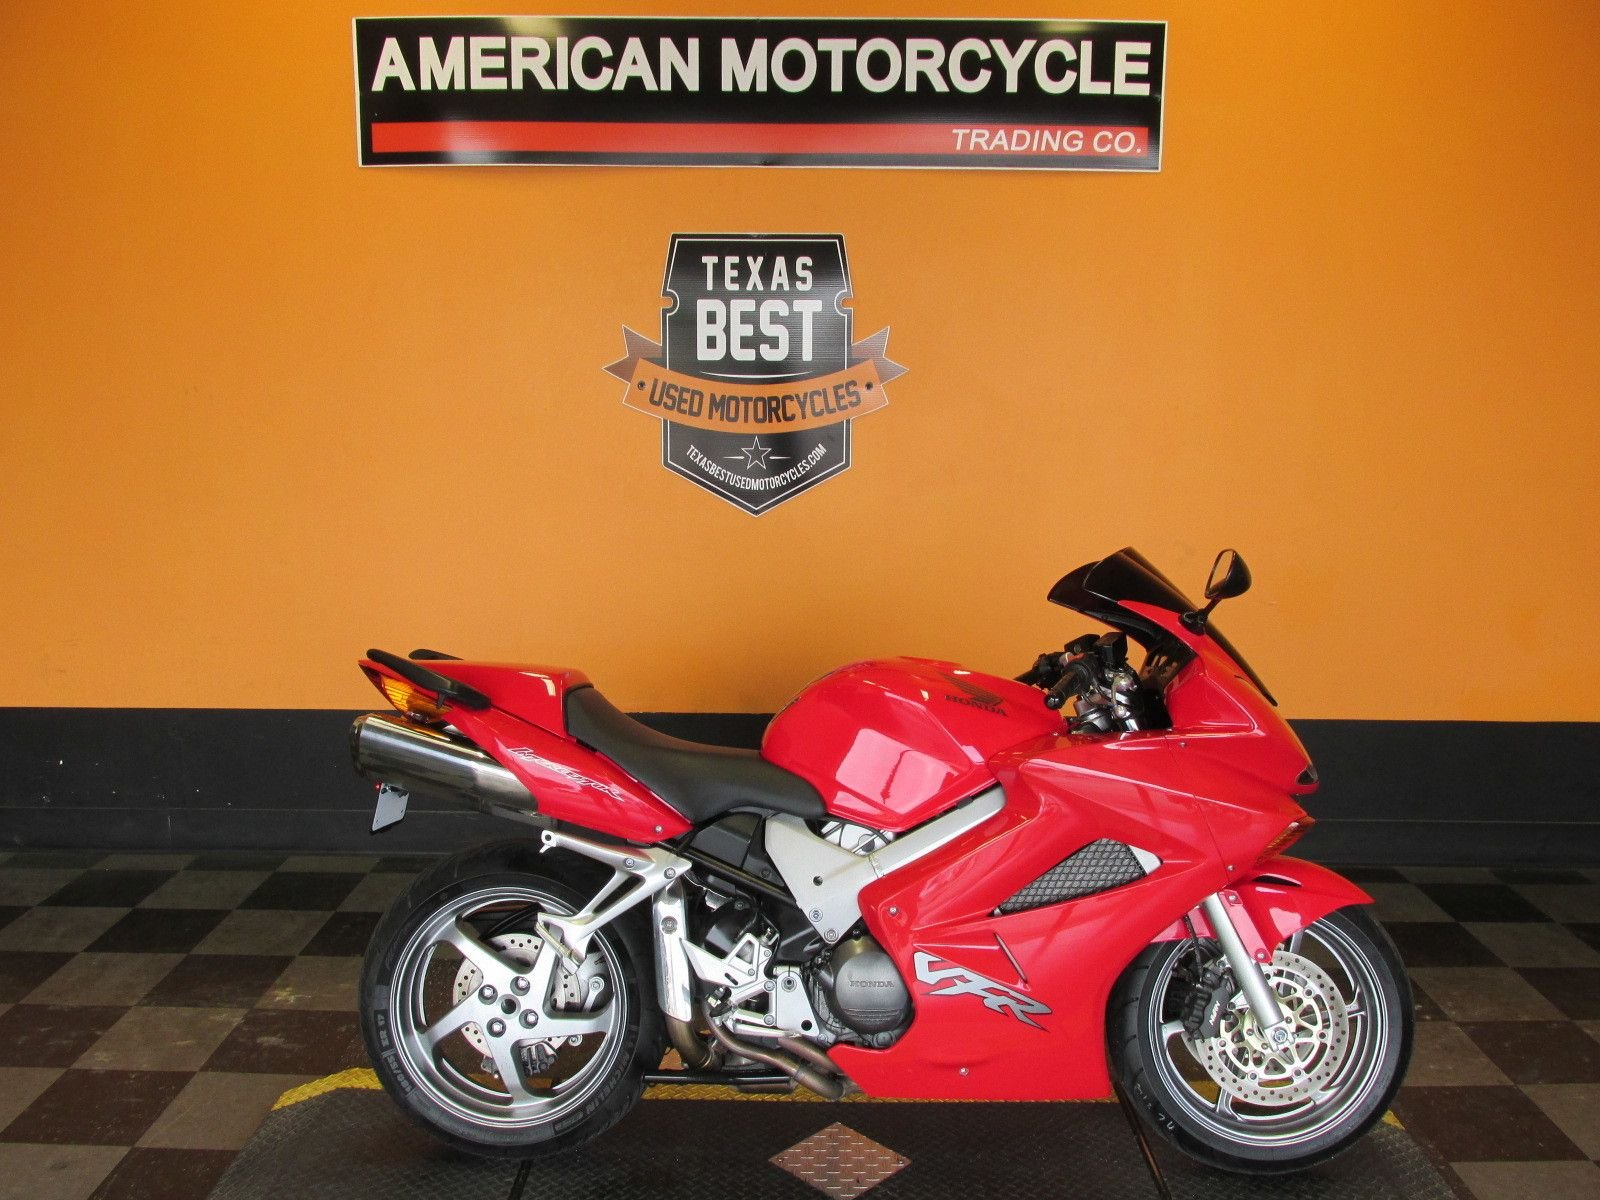 2004 honda interceptor vfr800